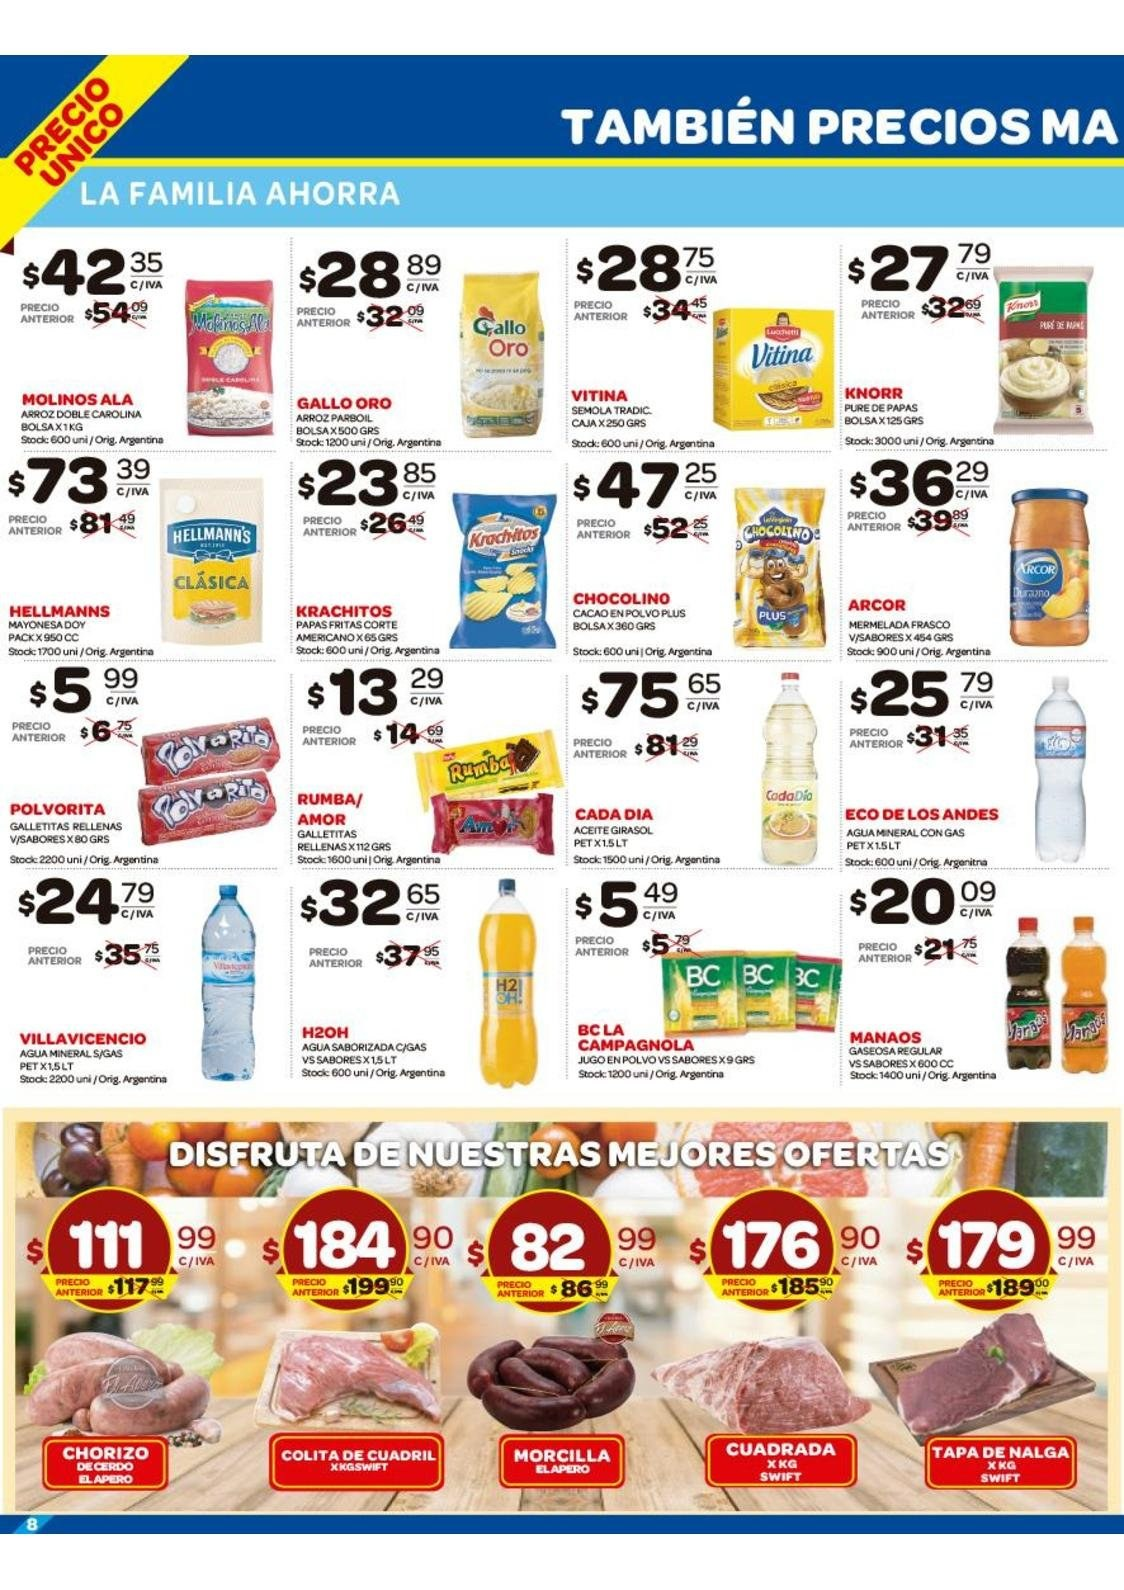 Folleto actual Carrefour - 31.12.2018 - 6.1.2019 - Ventas - arroz cc64f2a23588